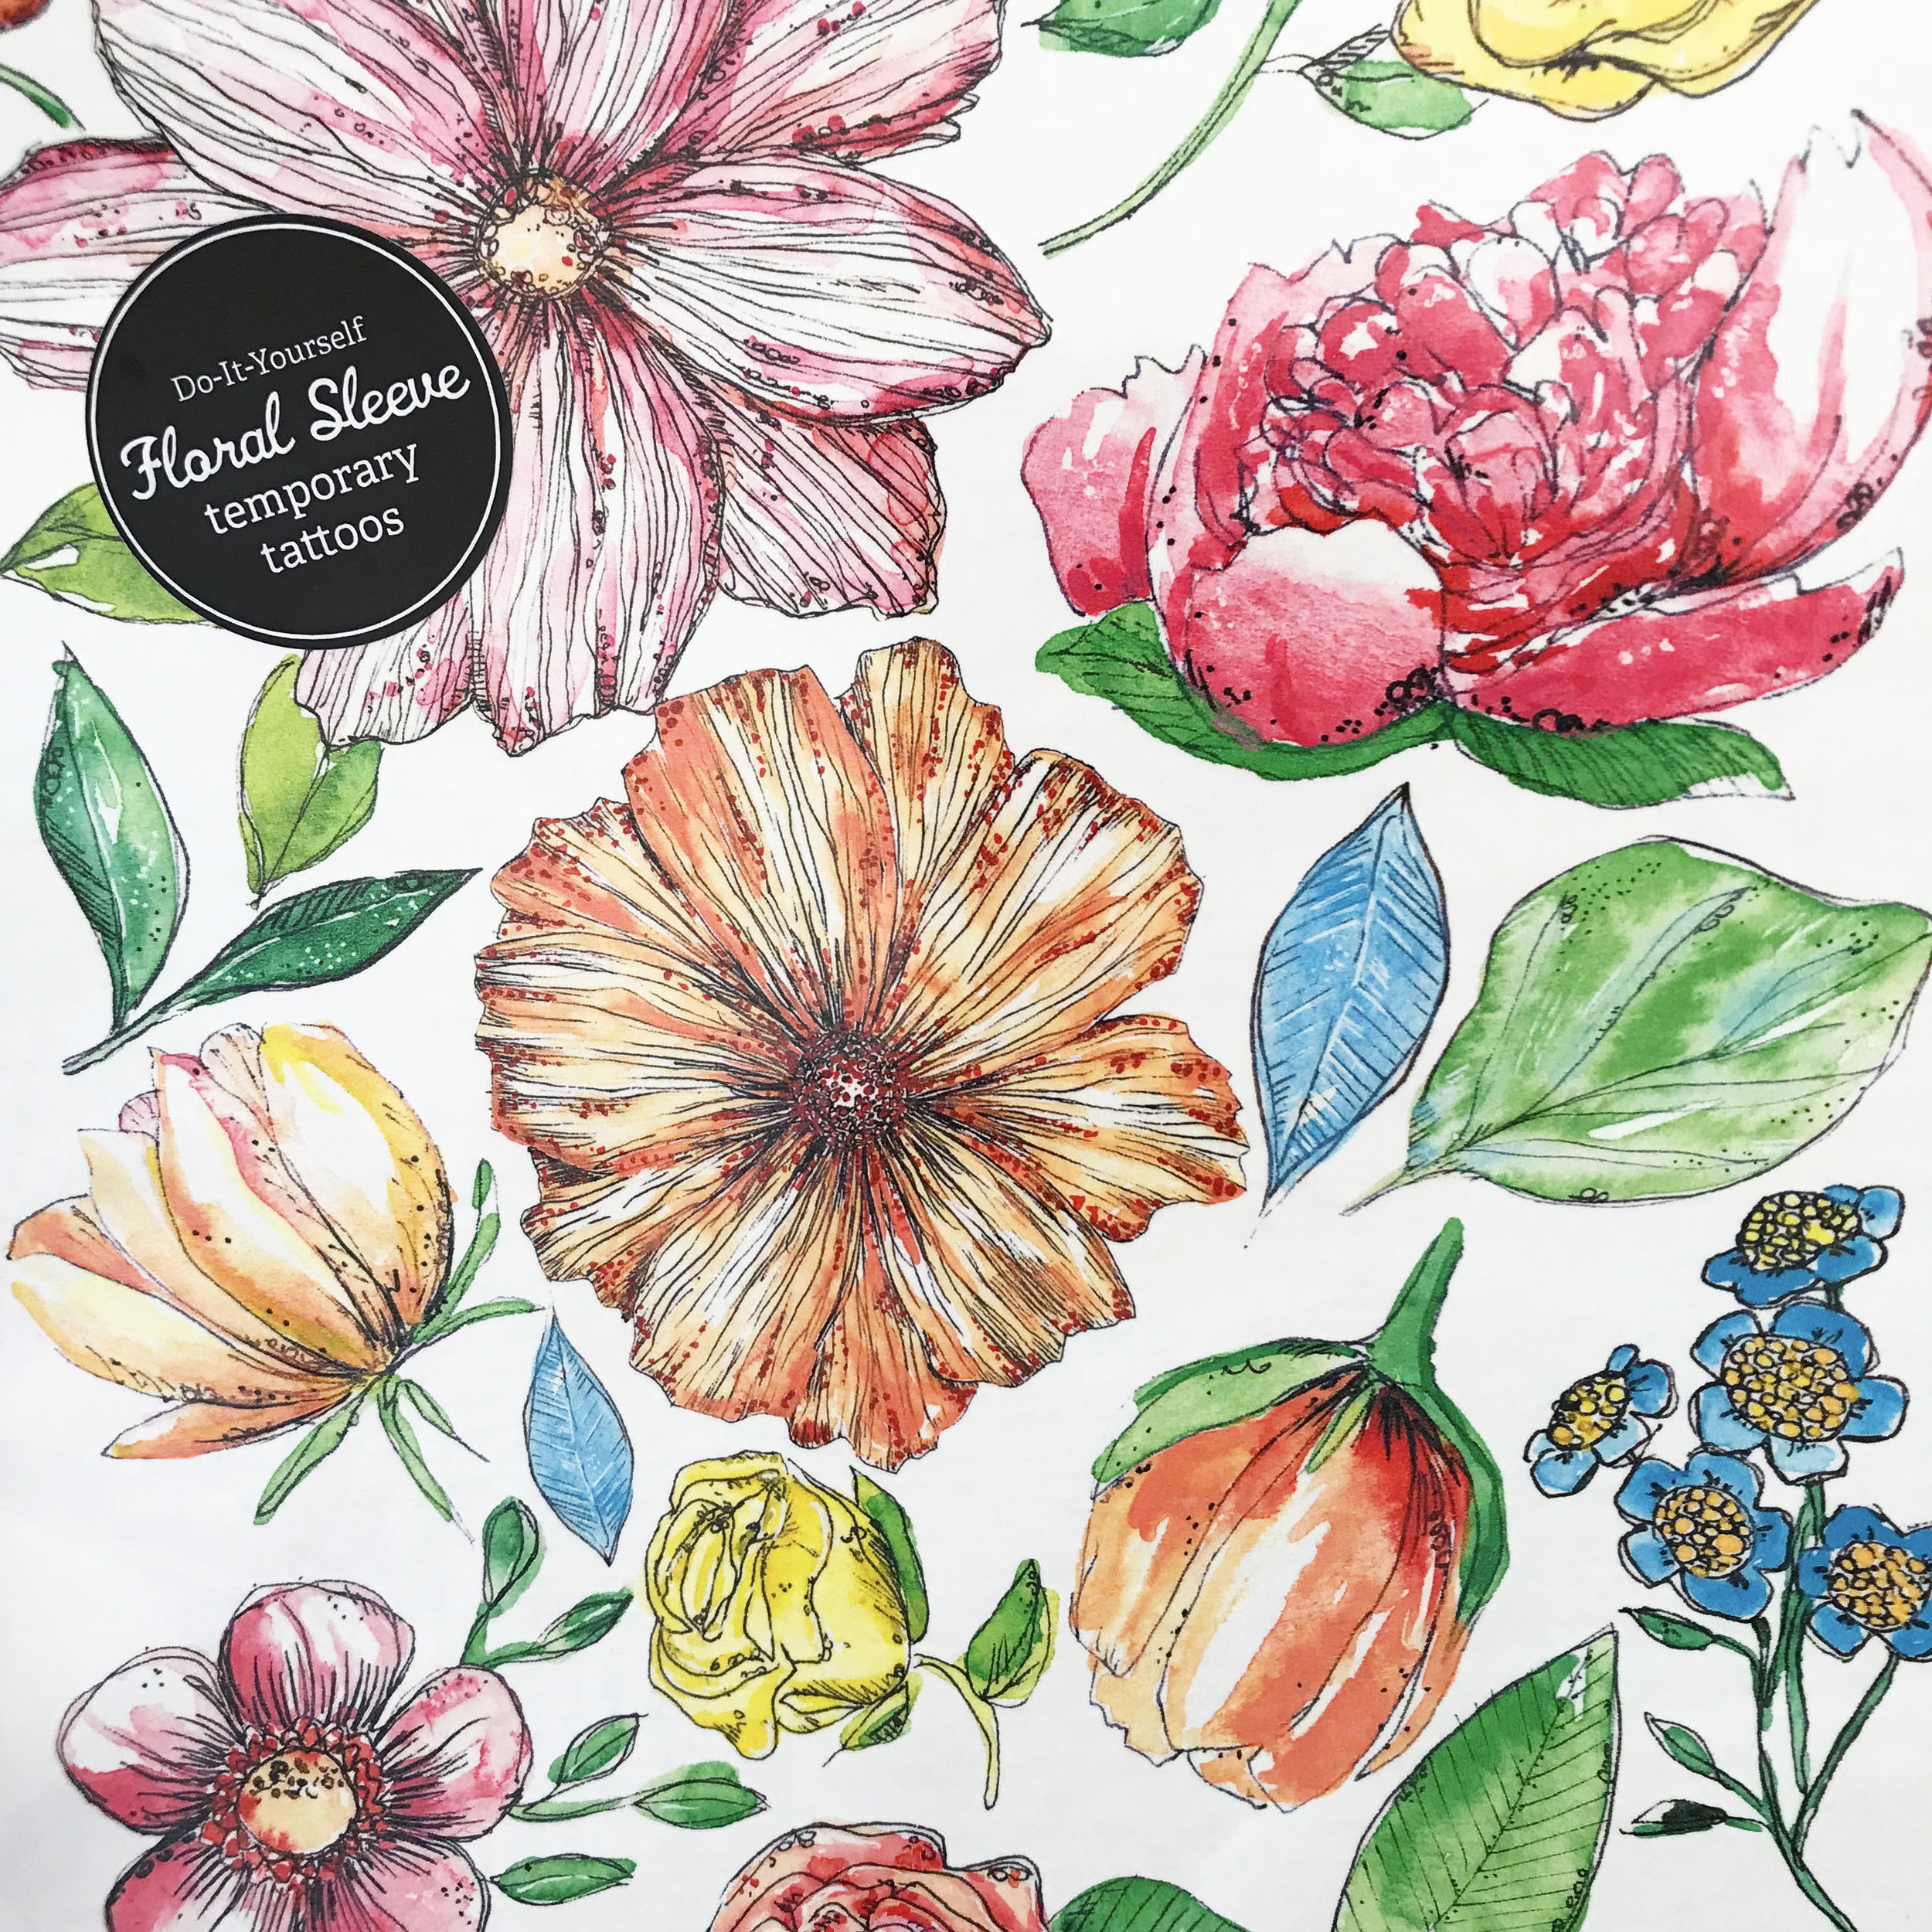 DIY Floral Sleeve Temporary Tattoos - Clever Mama